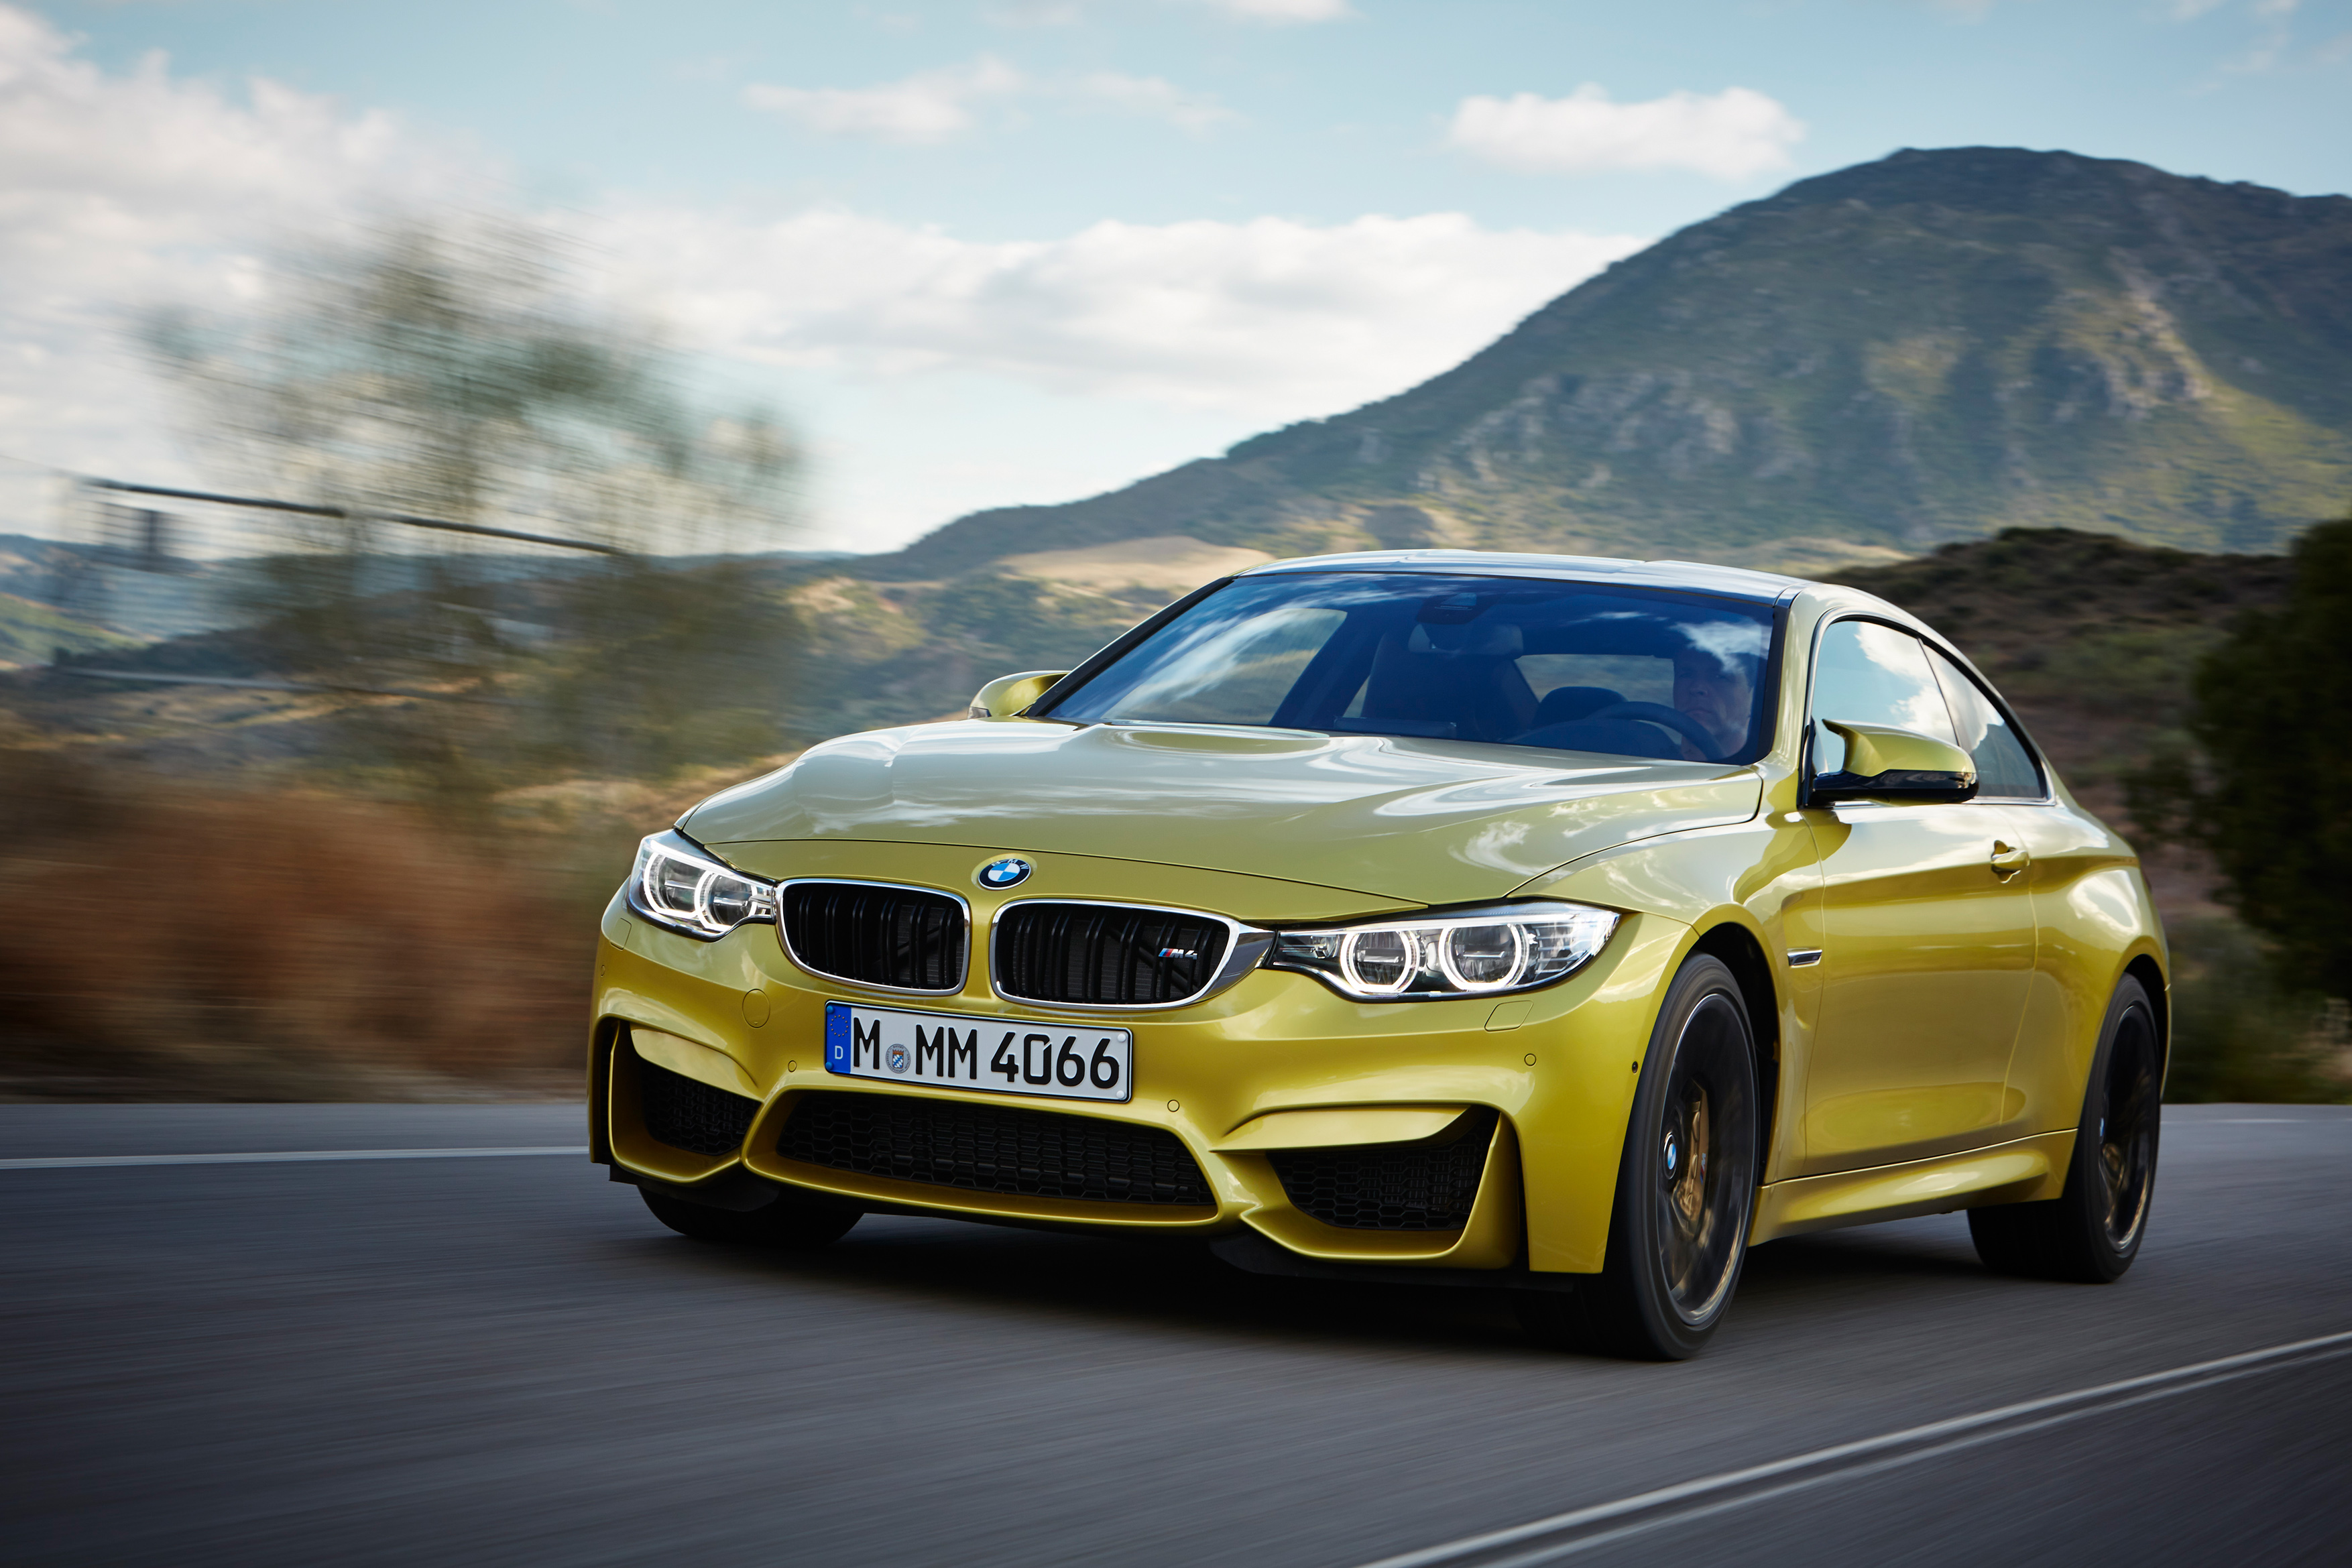 Exceptional Bmw Offical #3: BMW M3 Sedan And M4 Coupe U2013 Full Official Details Image #216956